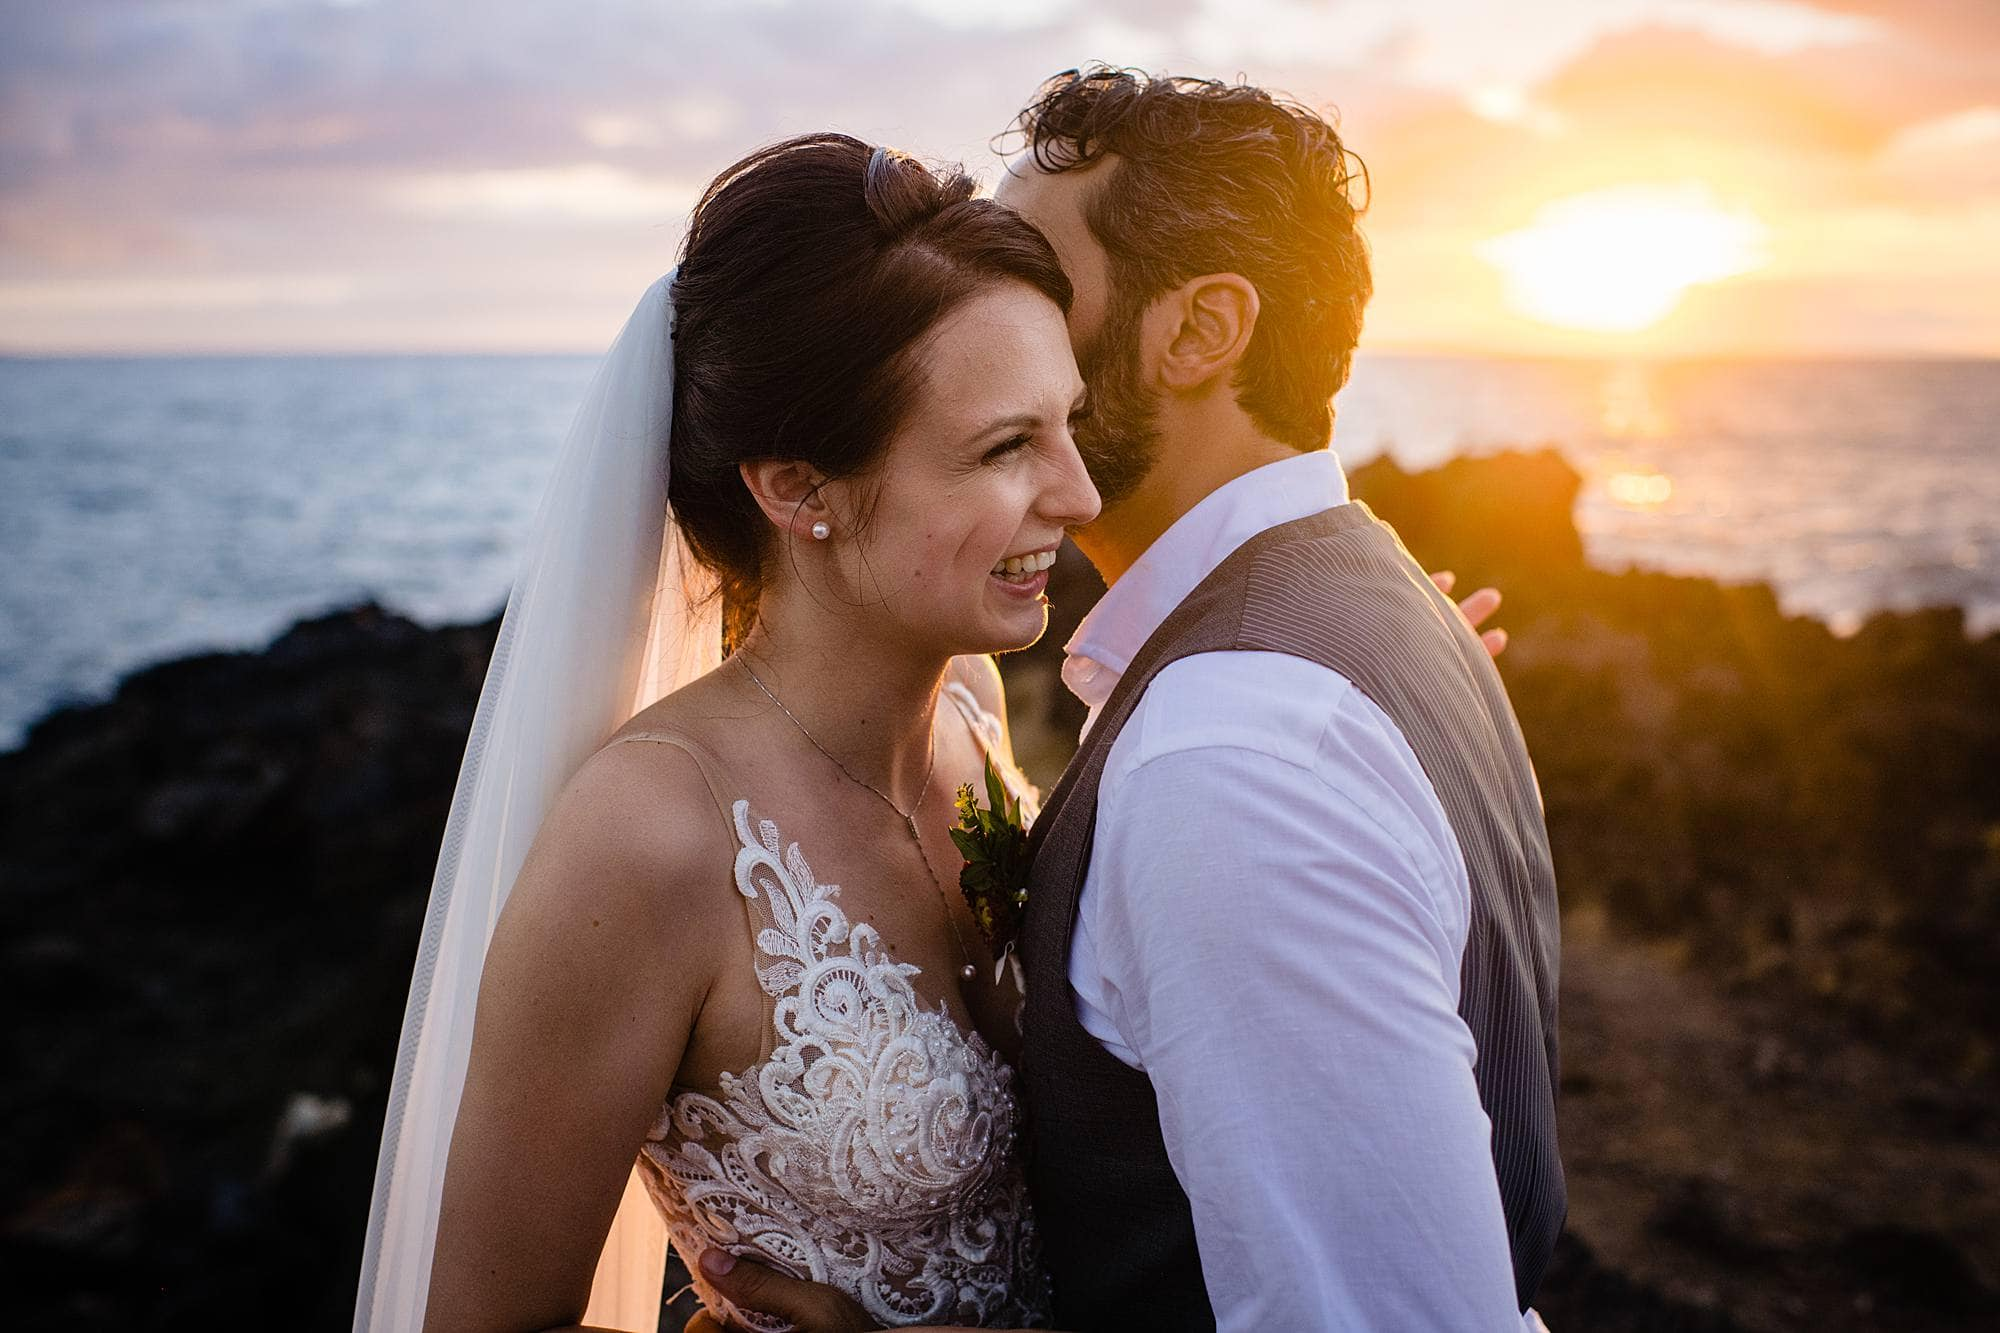 sunset portraits on wedding day in maui